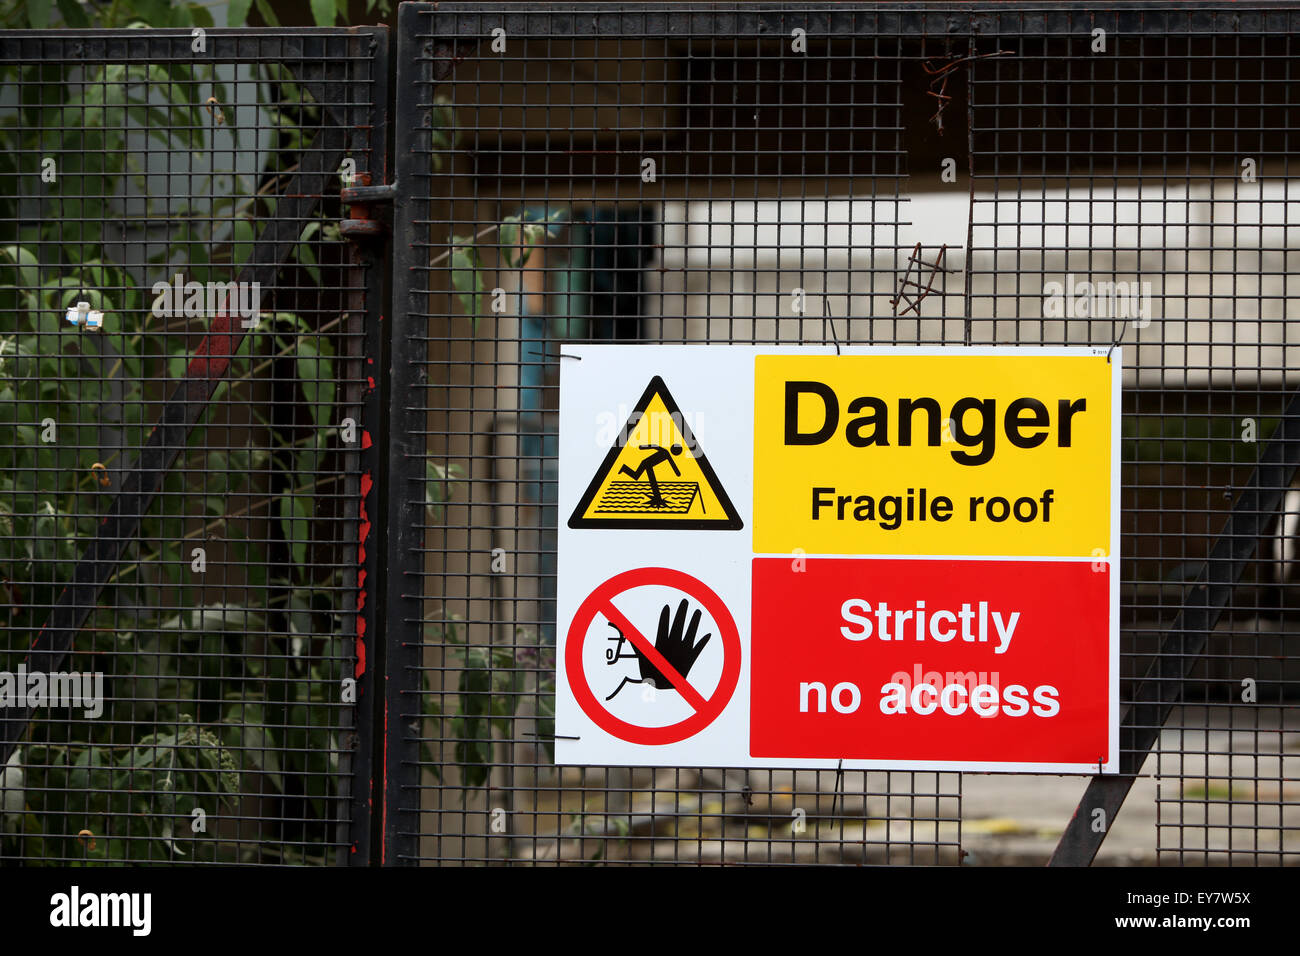 Building site safety signs Danger fragile roof strictly no access - Stock Image